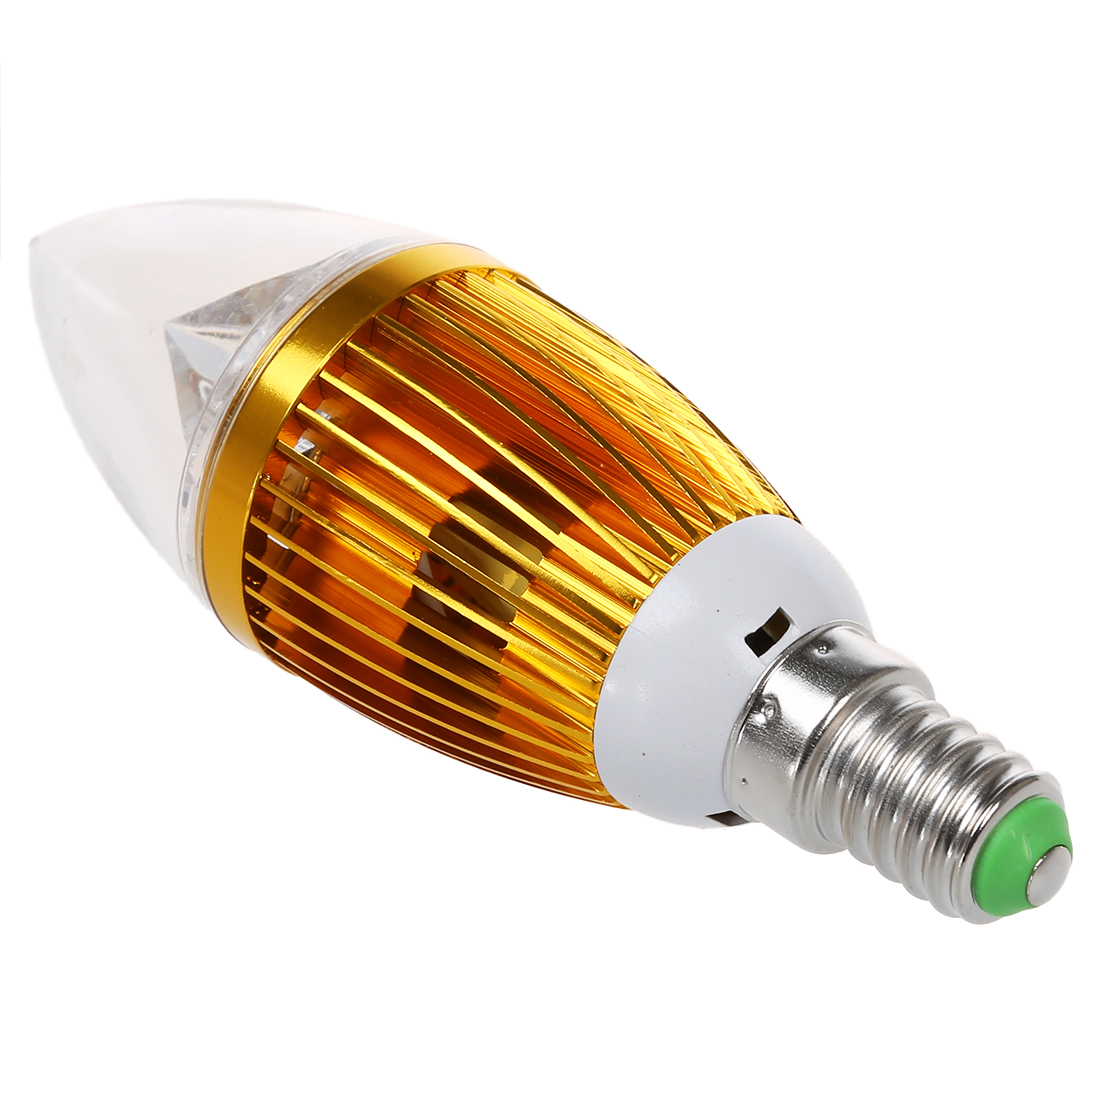 e14 4 led light bulb lamp 110 240v warm white 8w w2r4 ebay. Black Bedroom Furniture Sets. Home Design Ideas